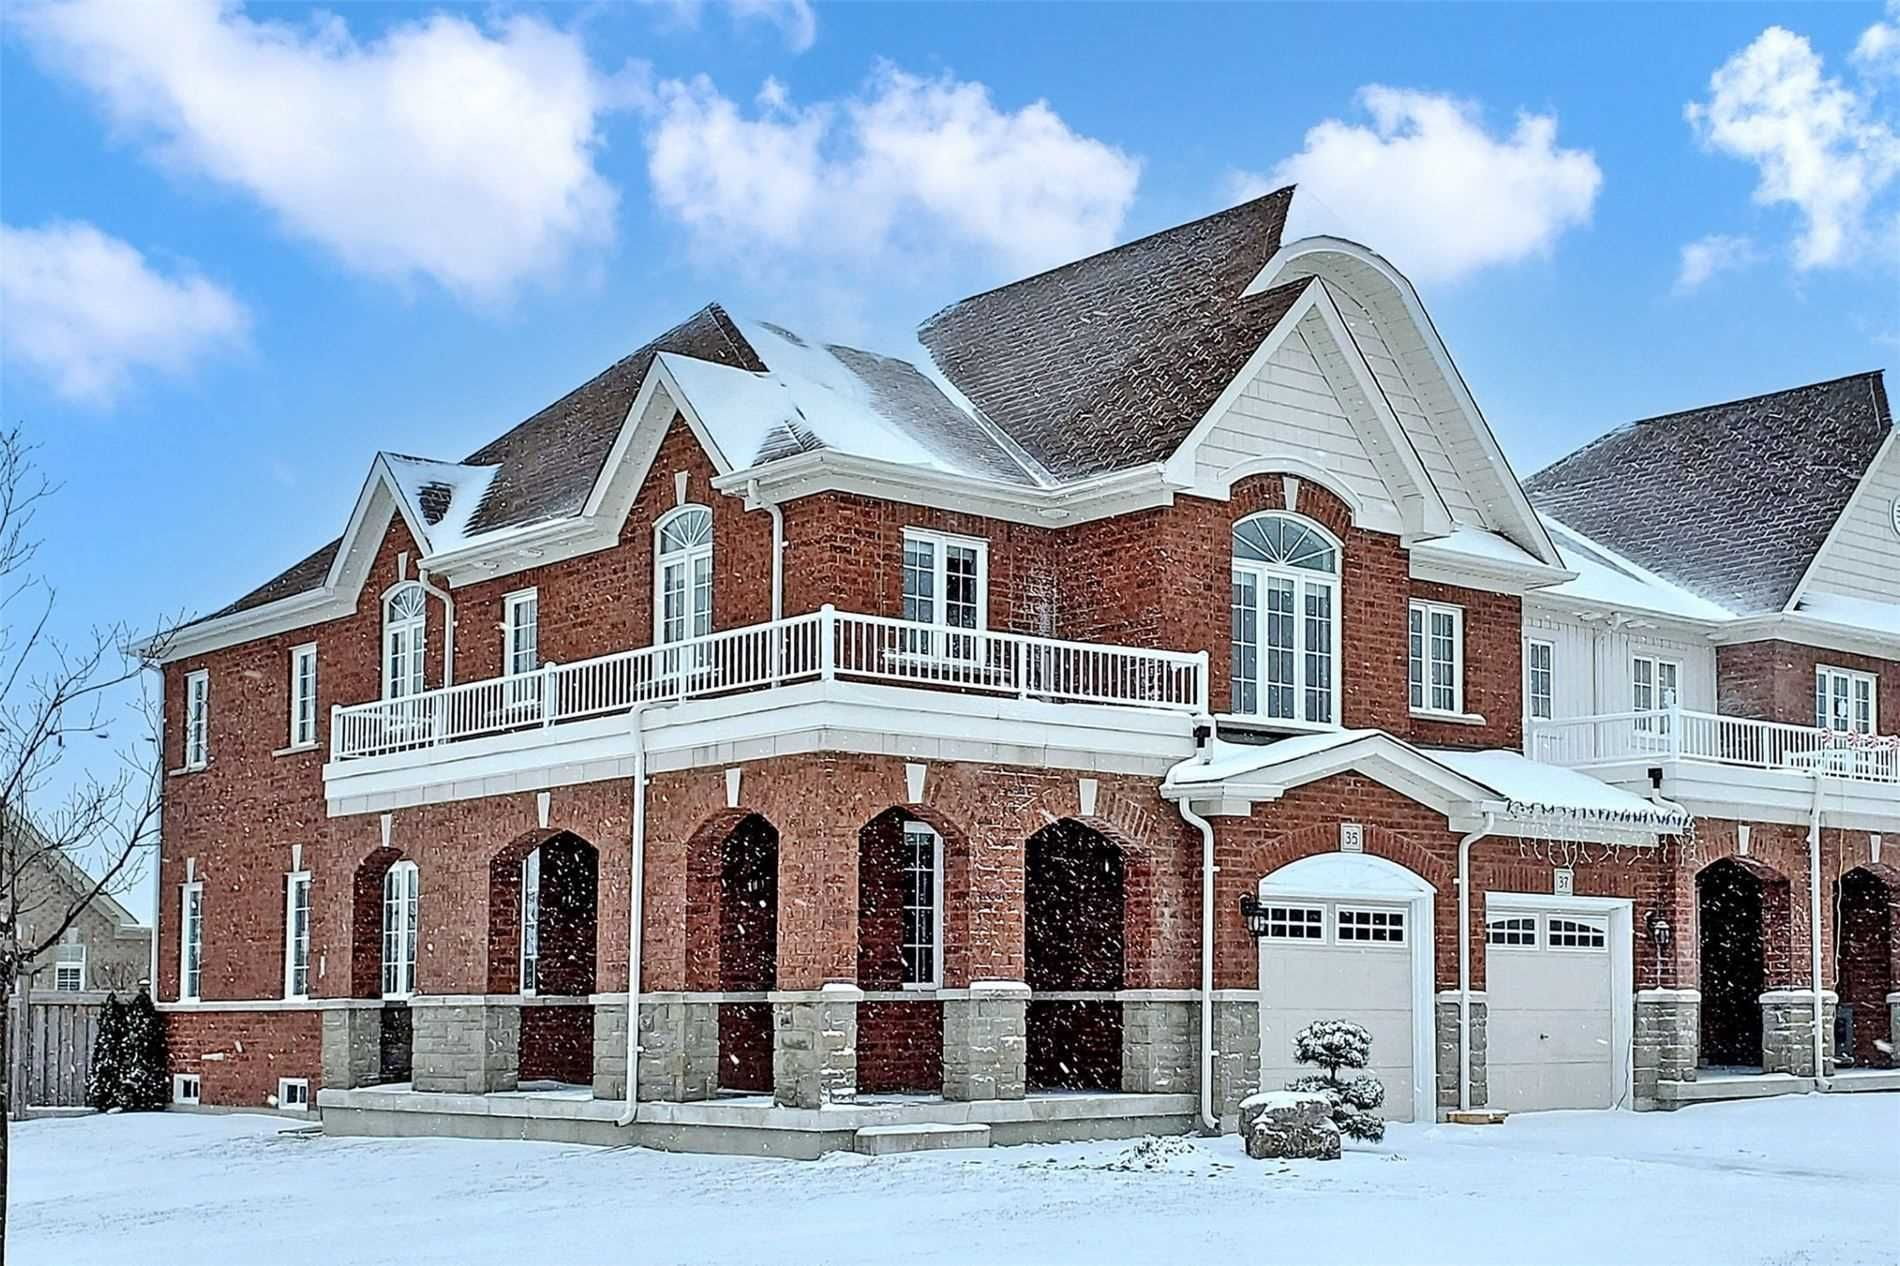 Main Photo: 35 Westover Drive in Clarington: Bowmanville House (2-Storey) for sale : MLS®# E5095389